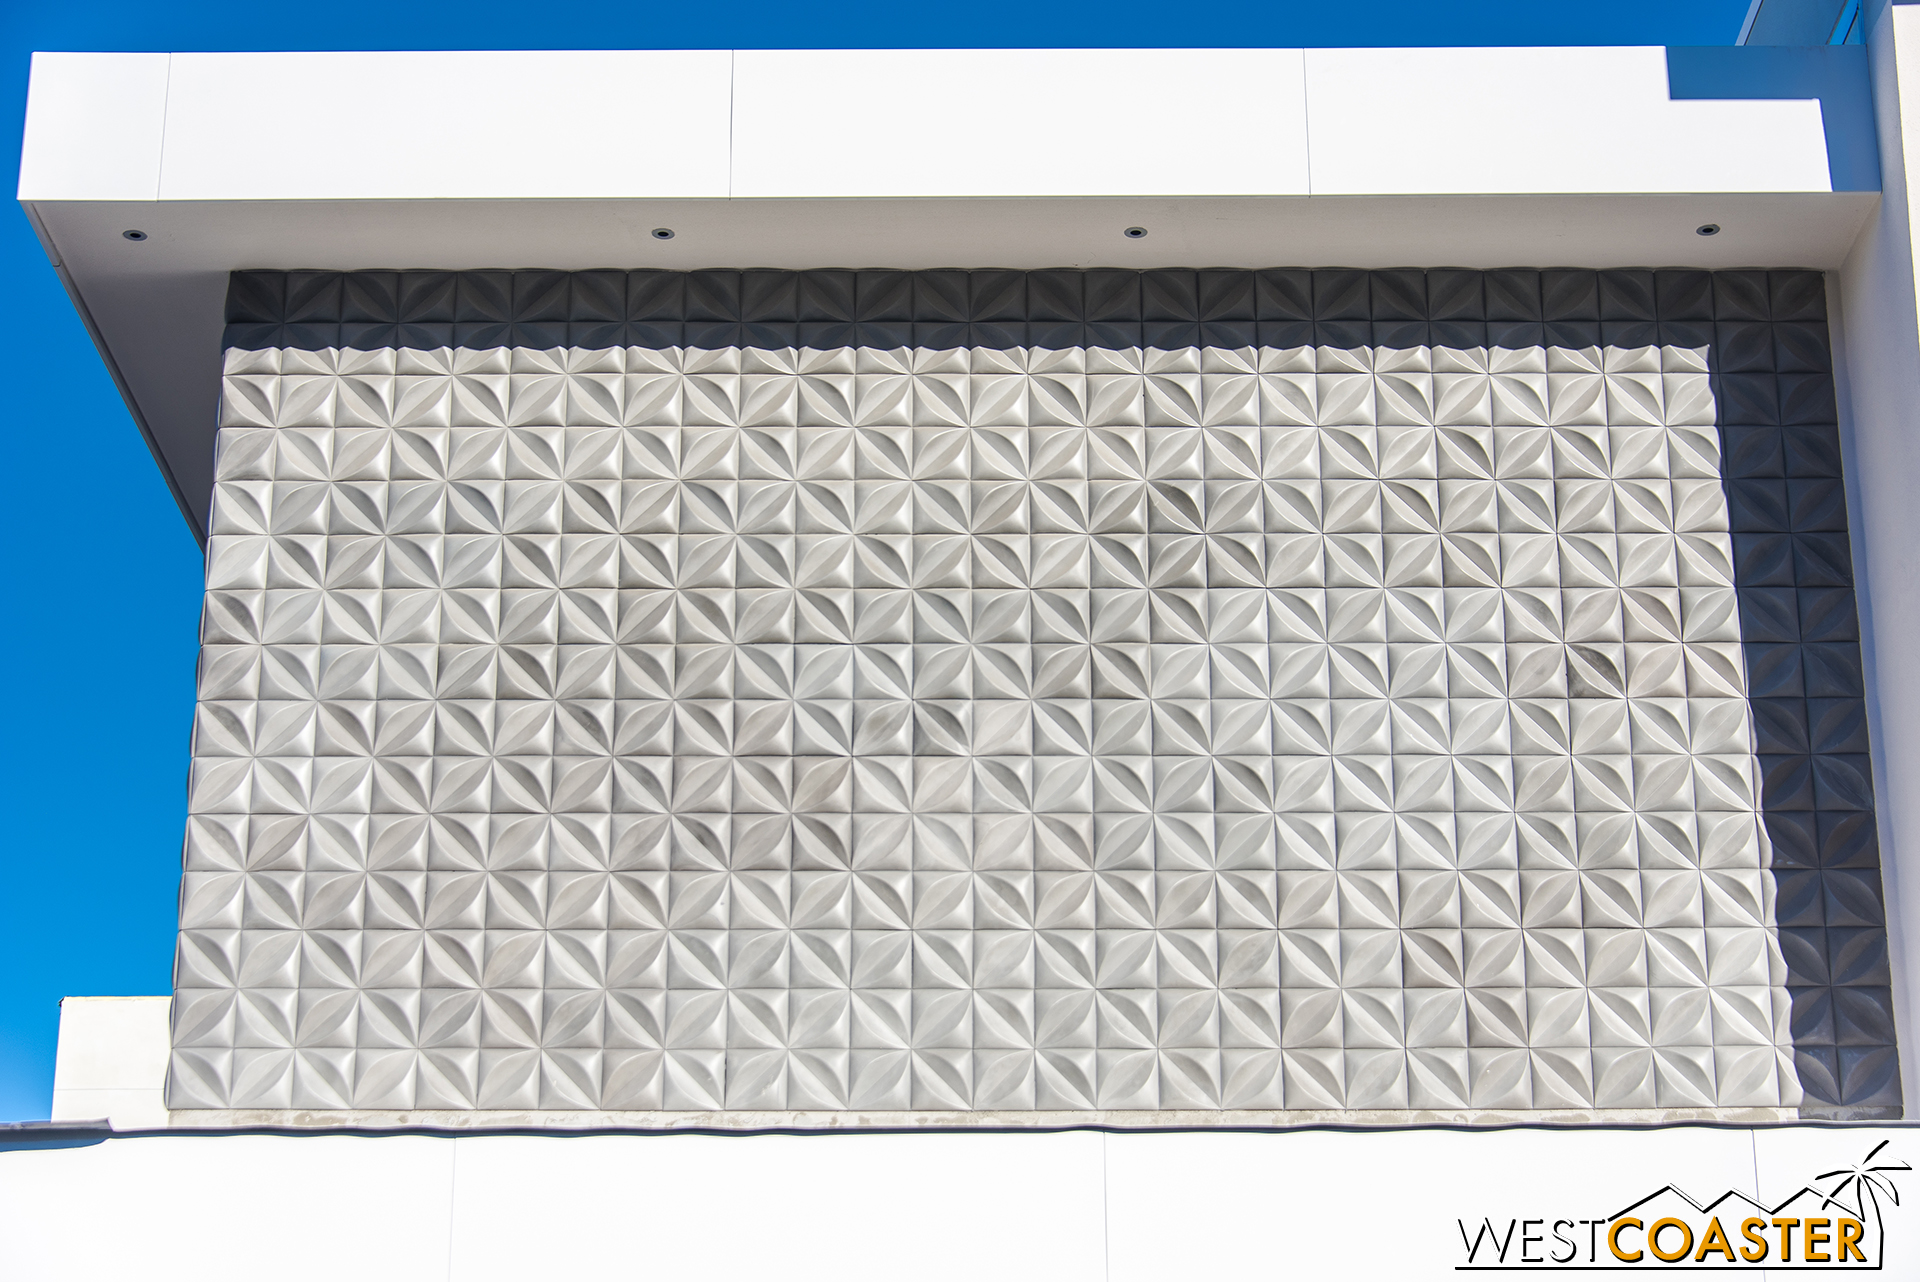 For example, this textured wall.